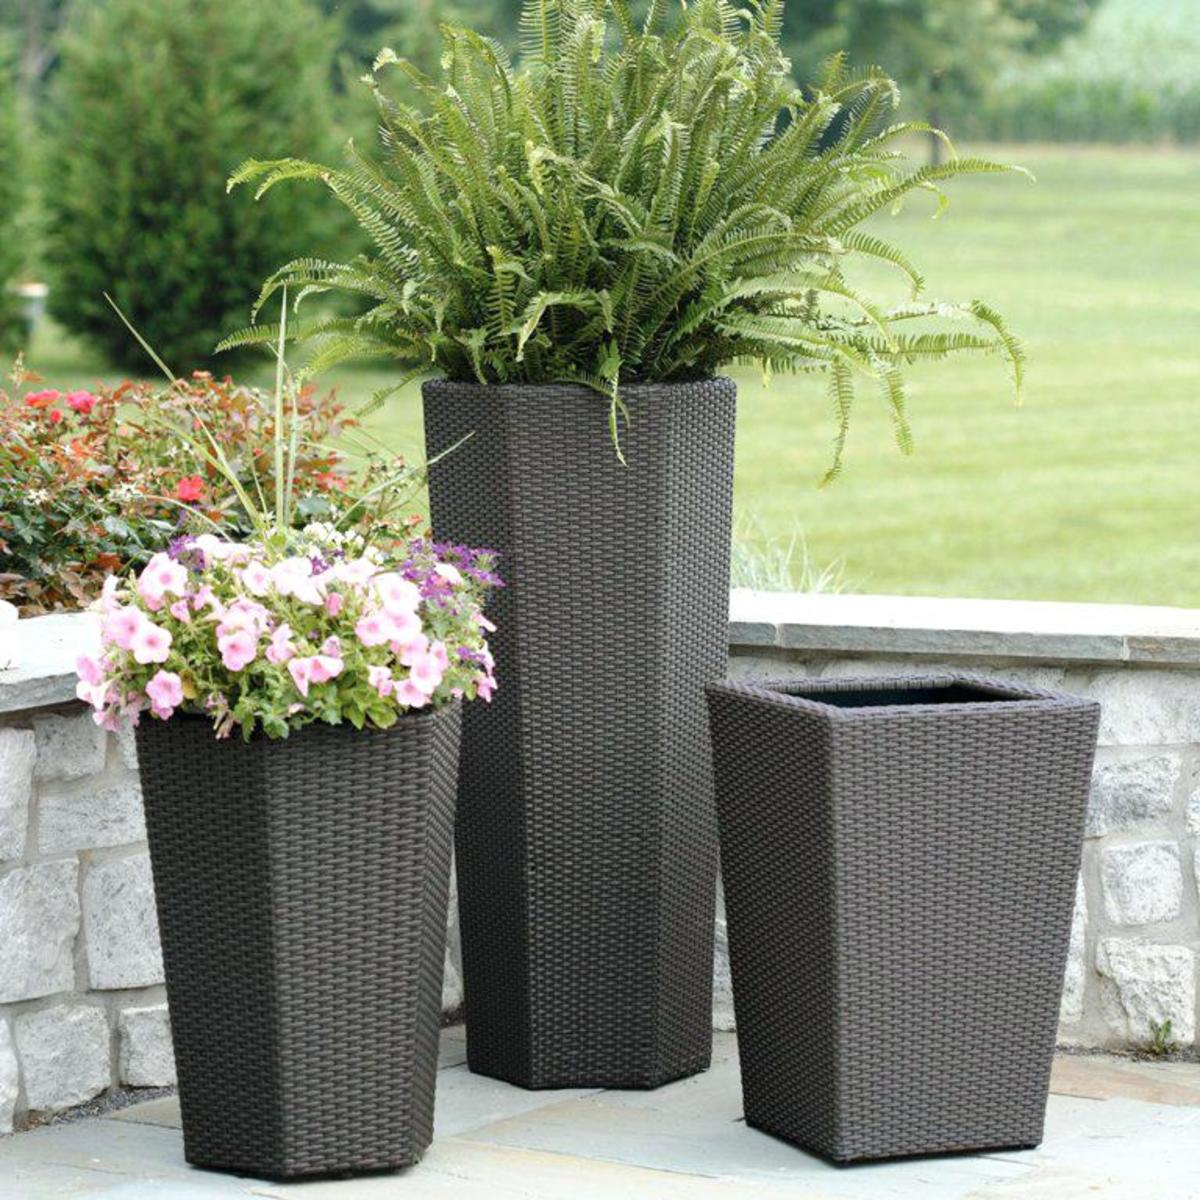 Garden planters come in all types of materials.